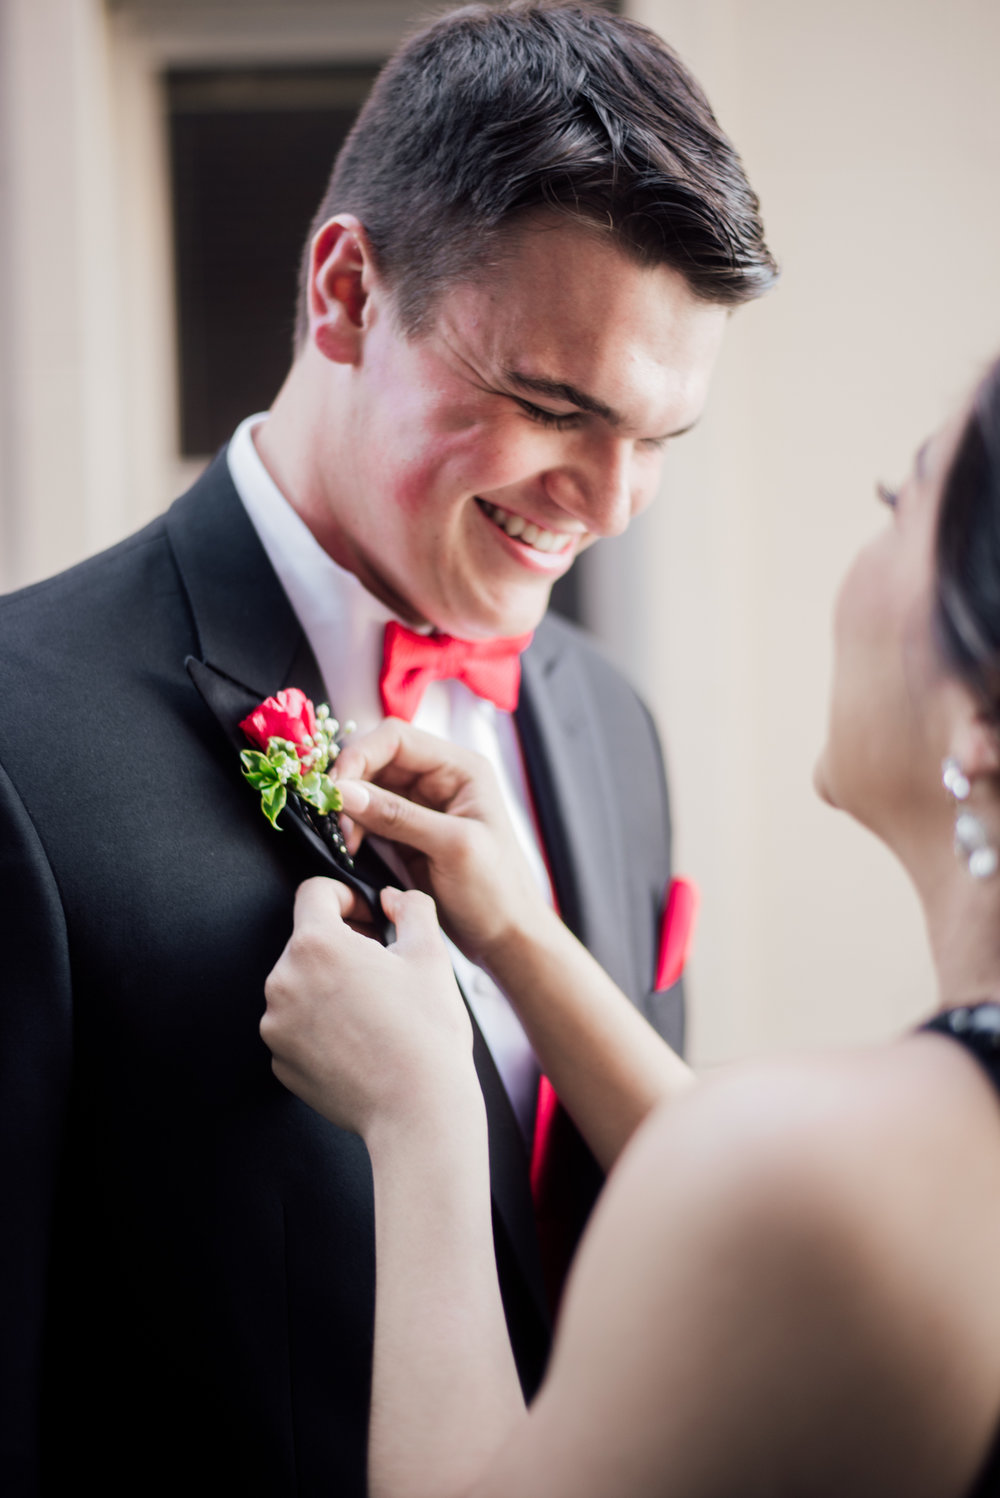 evelyn and quinn muscatine prom pictures-3.jpg